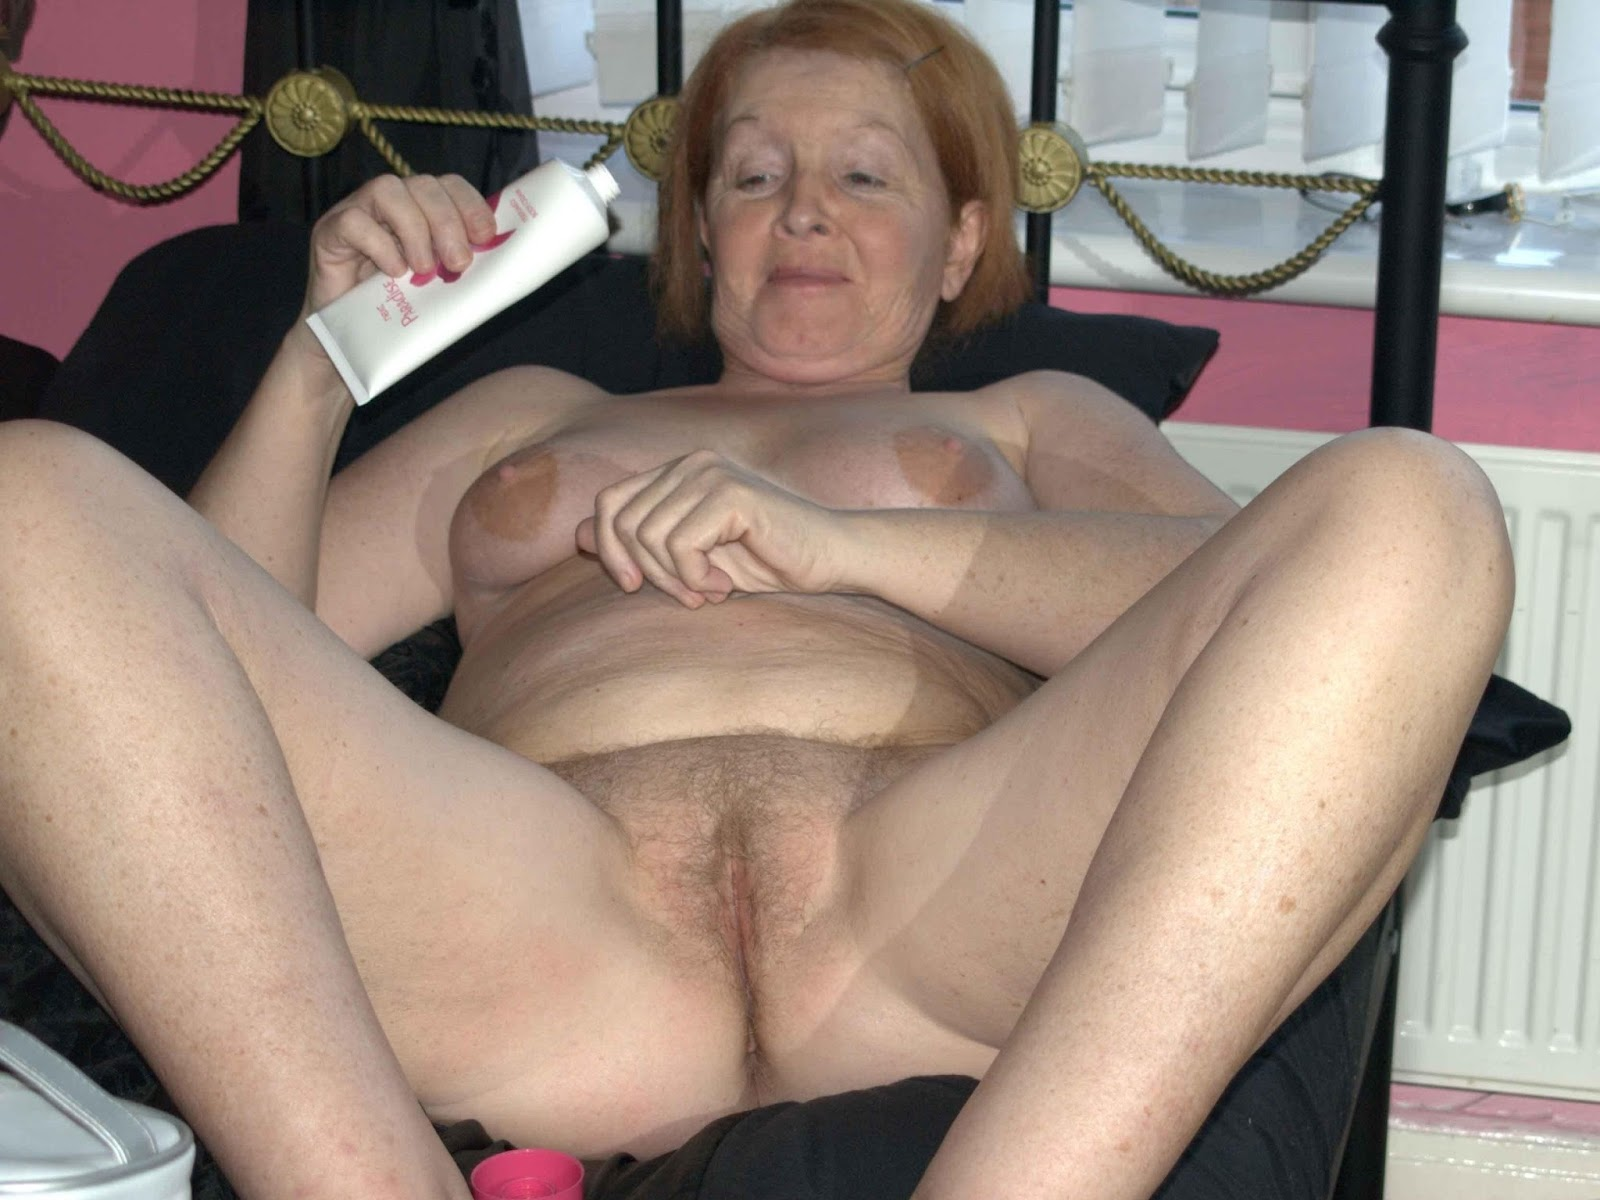 Sex 70 Looking Woman To 65 Fetish For